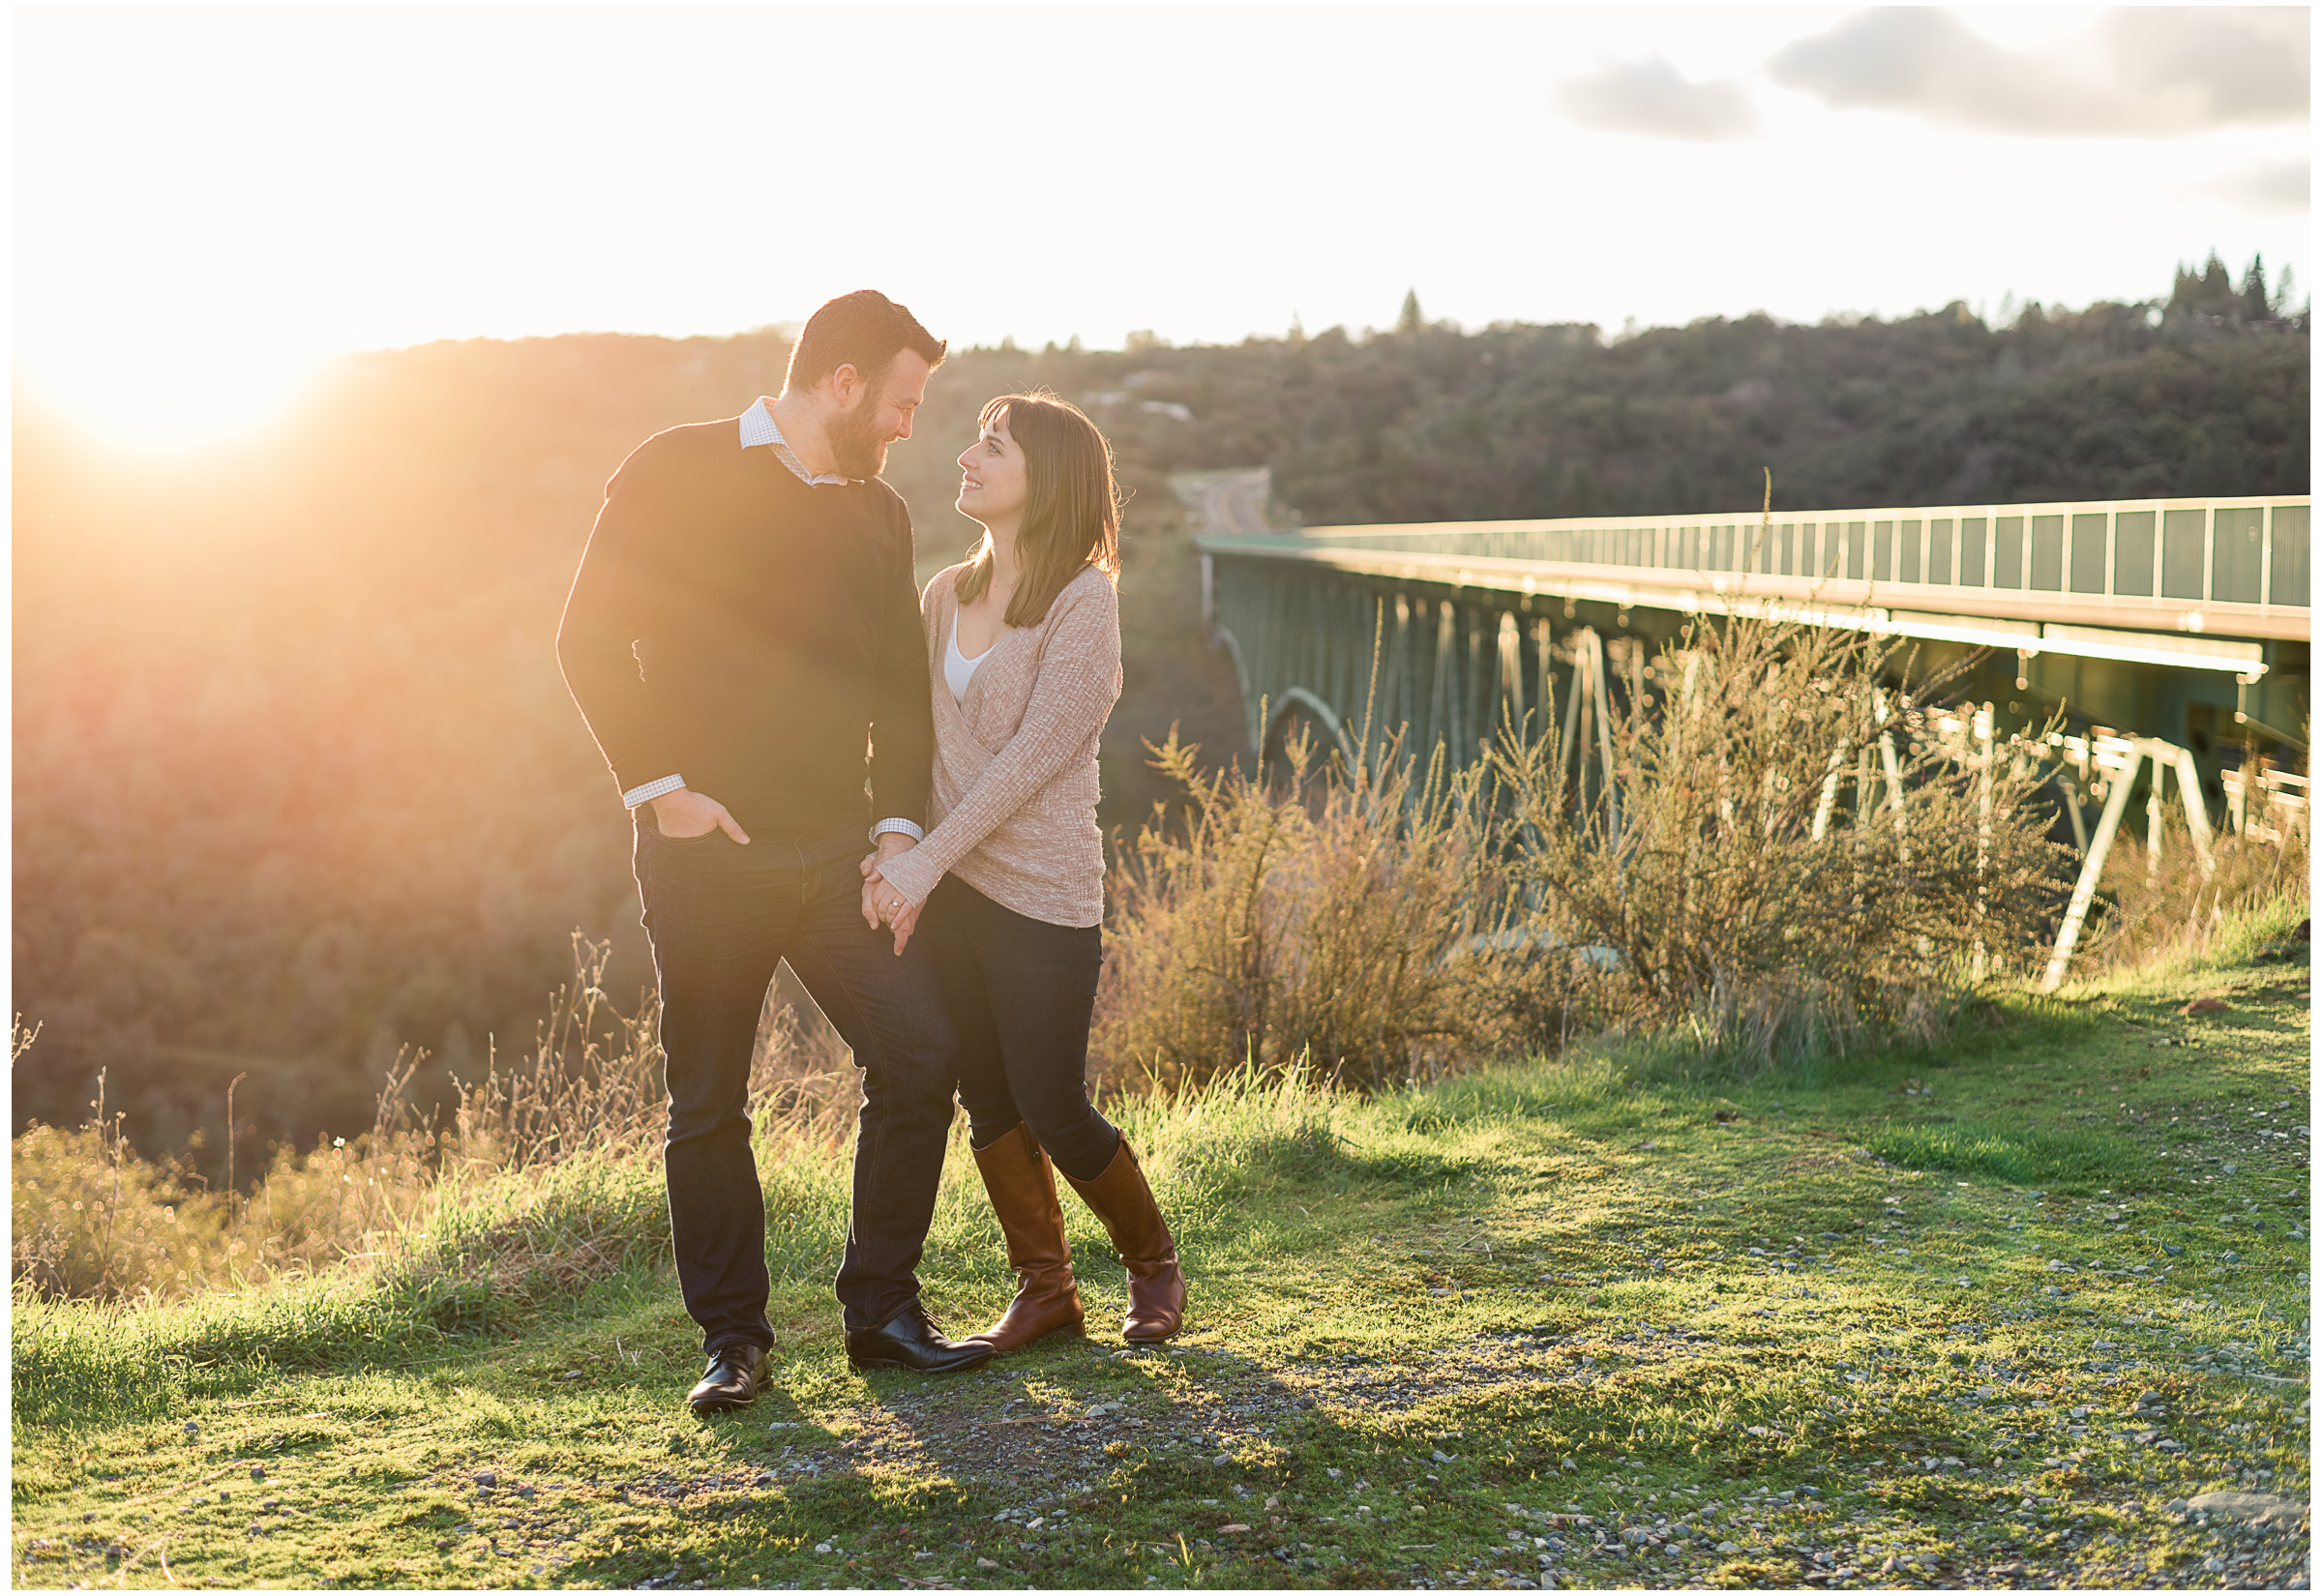 Auburn Engagement Session - Sacramento Photographer - Justin Wilcox Photography - 8.jpg